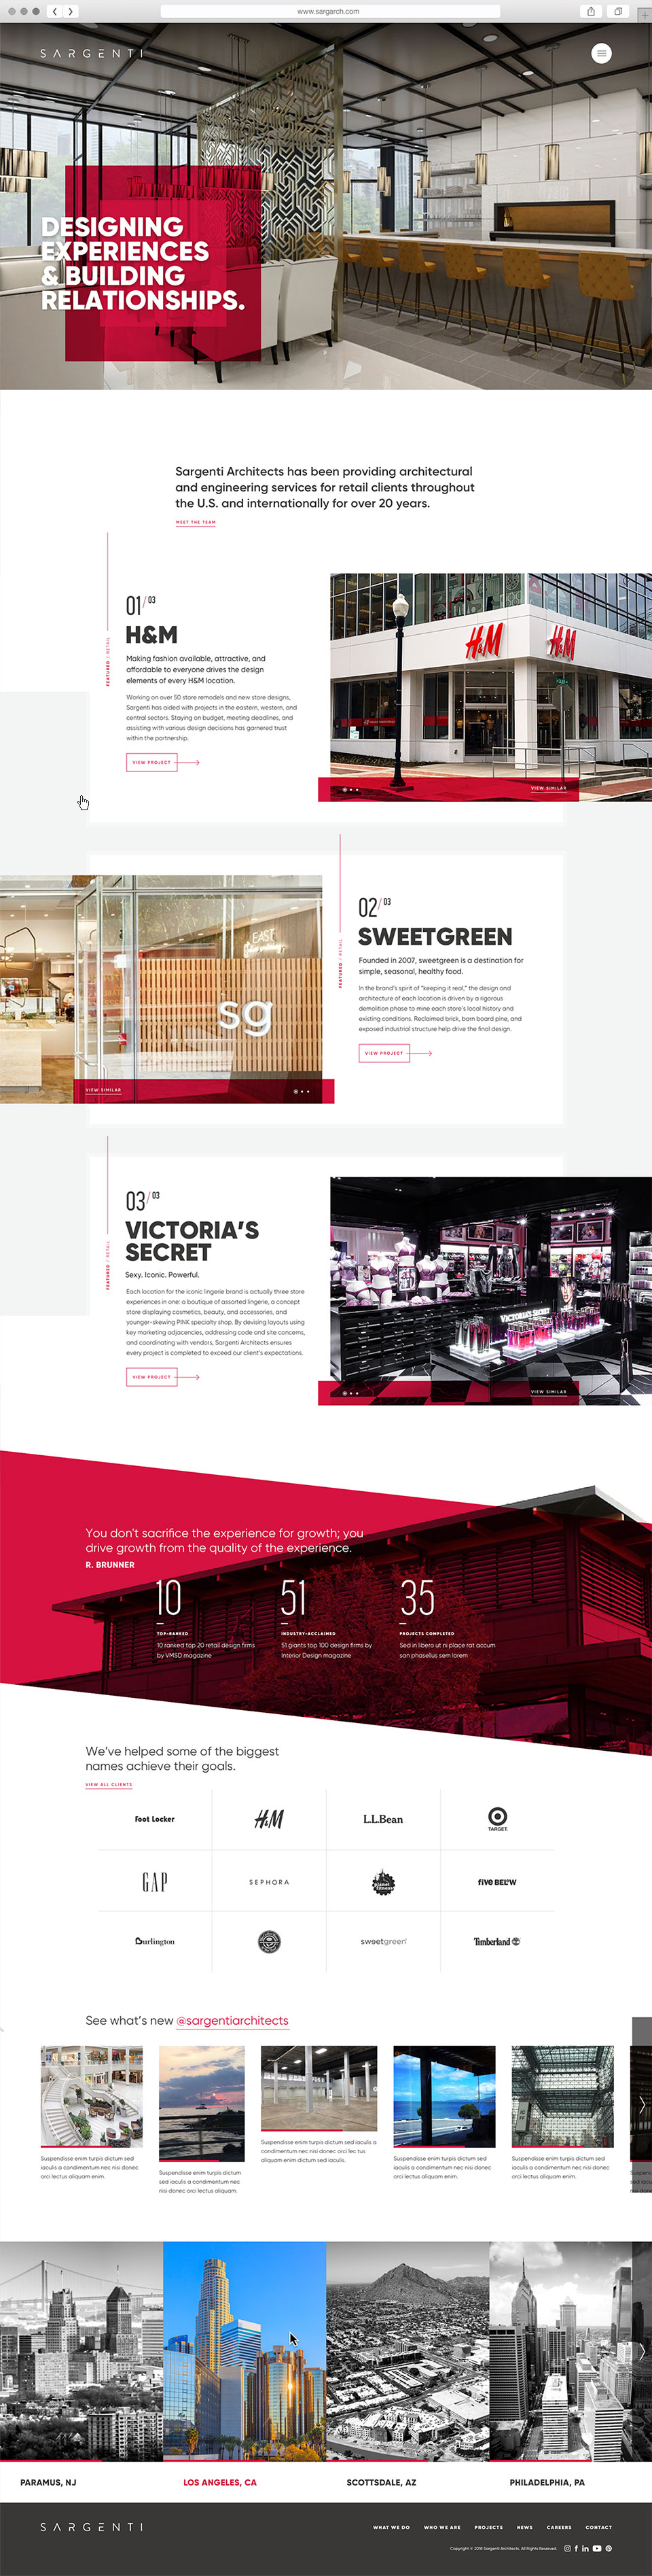 Homepage user interface design for architecture firm